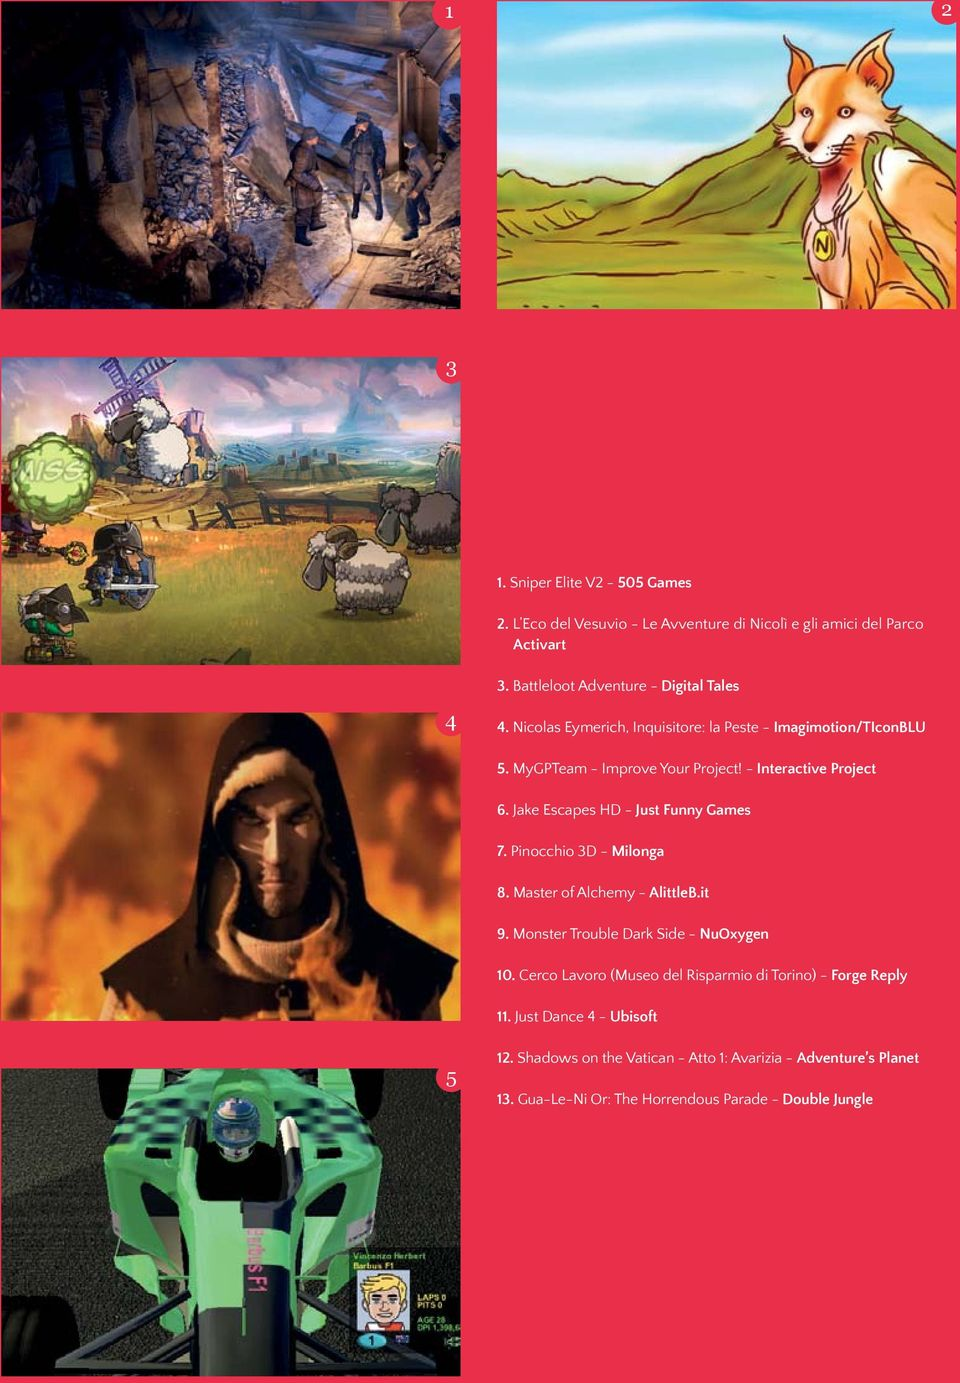 Jake Escapes HD - Just Funny Games 7. Pinocchio 3D - Milonga 8. Master of Alchemy - AlittleB.it 9. Monster Trouble Dark Side - NuOxygen 10.